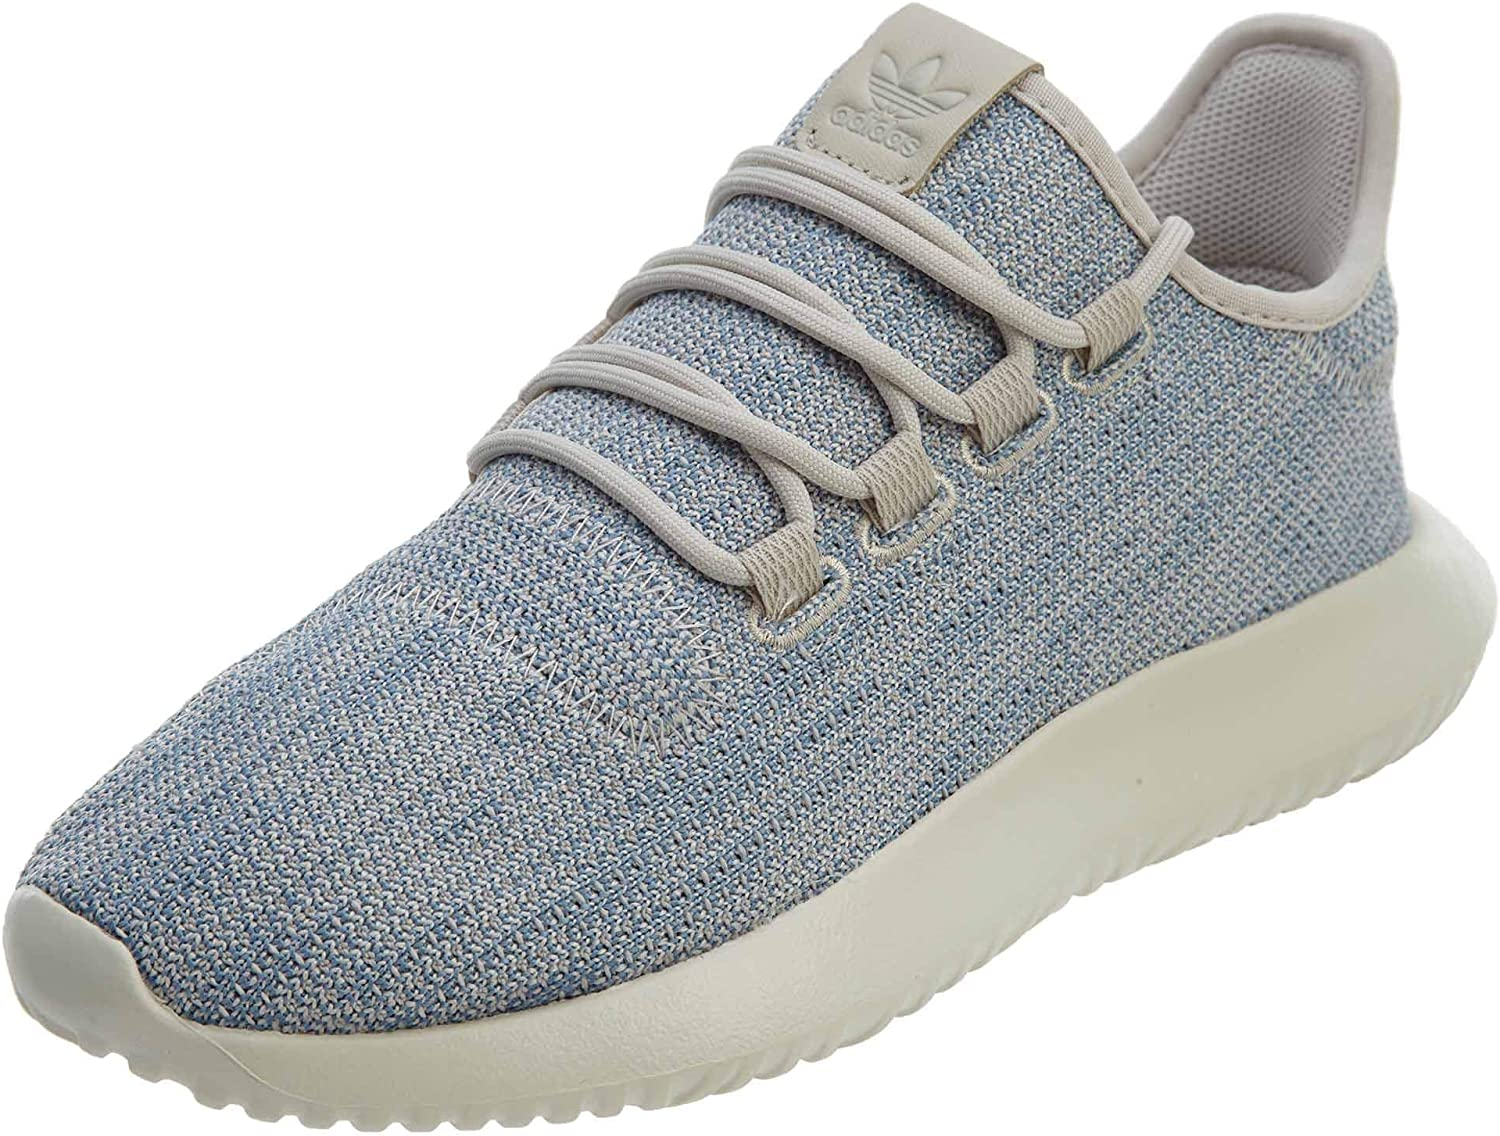 Tamano relativo recoger Gigante  Amazon.com | adidas Tubular Shadow CK | Fashion Sneakers